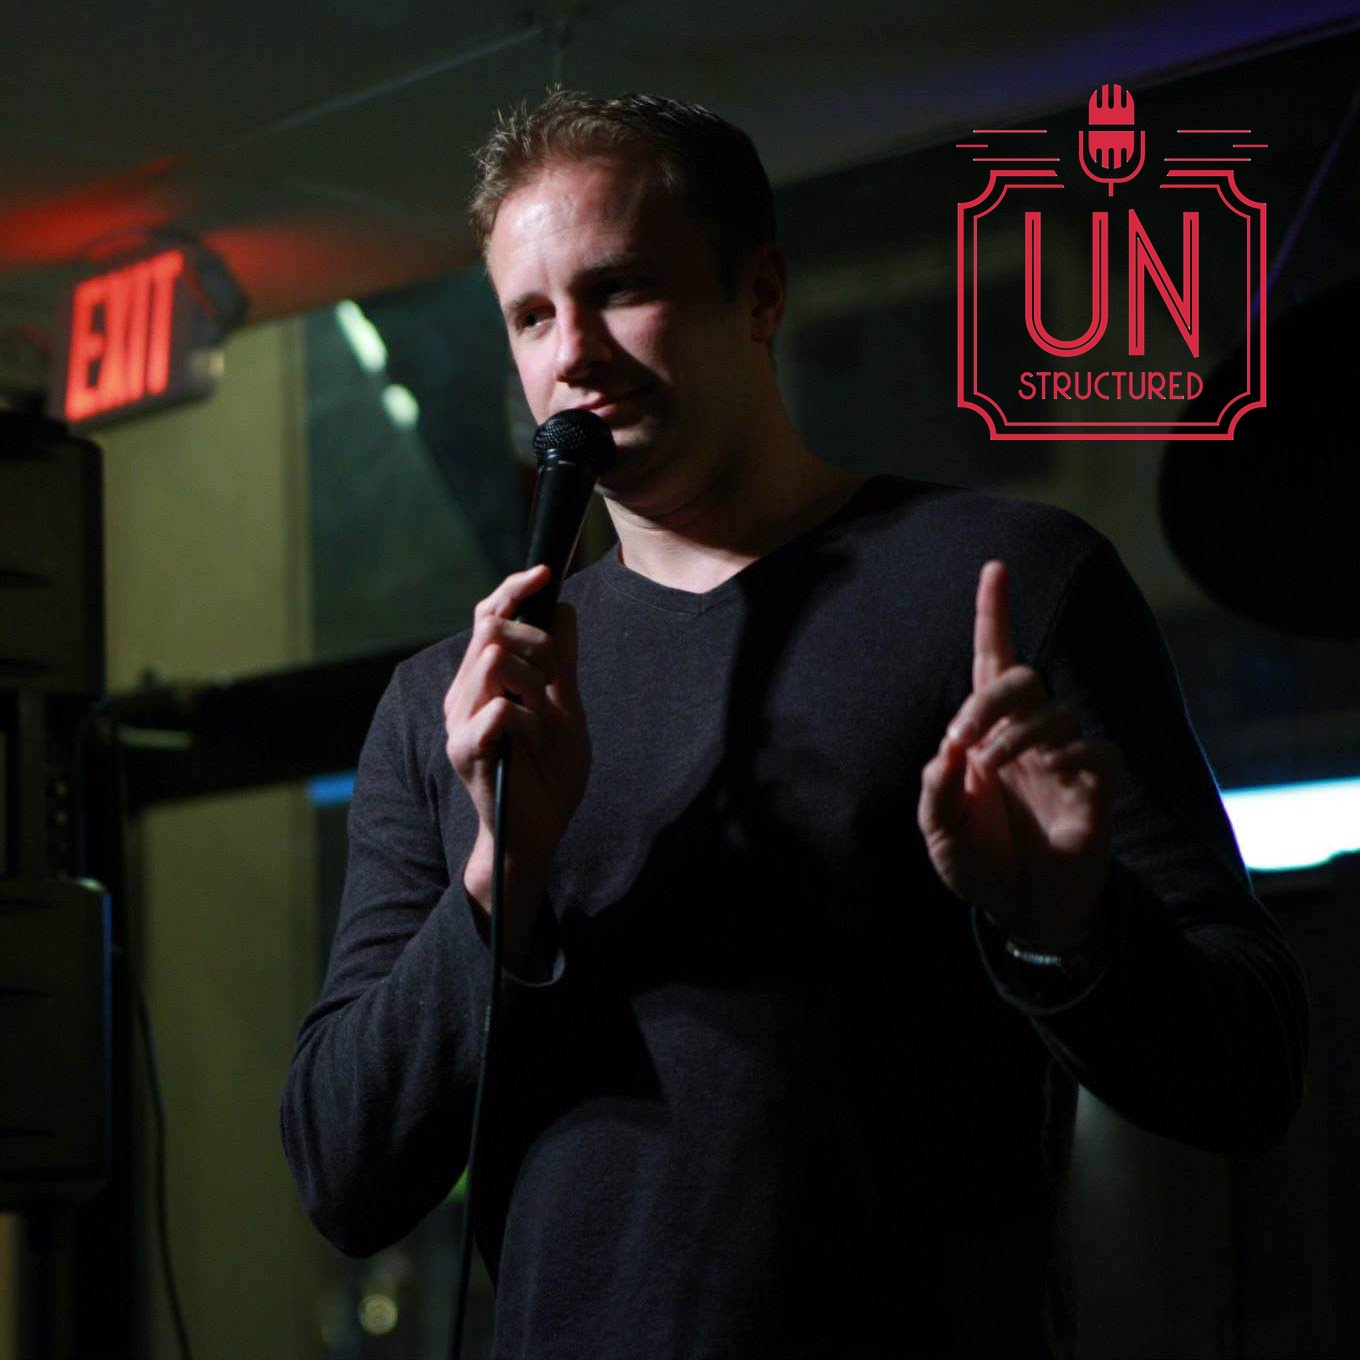 035 - Kevin Gootee UnstructuredPod Unstructured interviews - Dynamic Informal Conversations with unique wide-ranging and well-researched interviews hosted by Eric Hunley